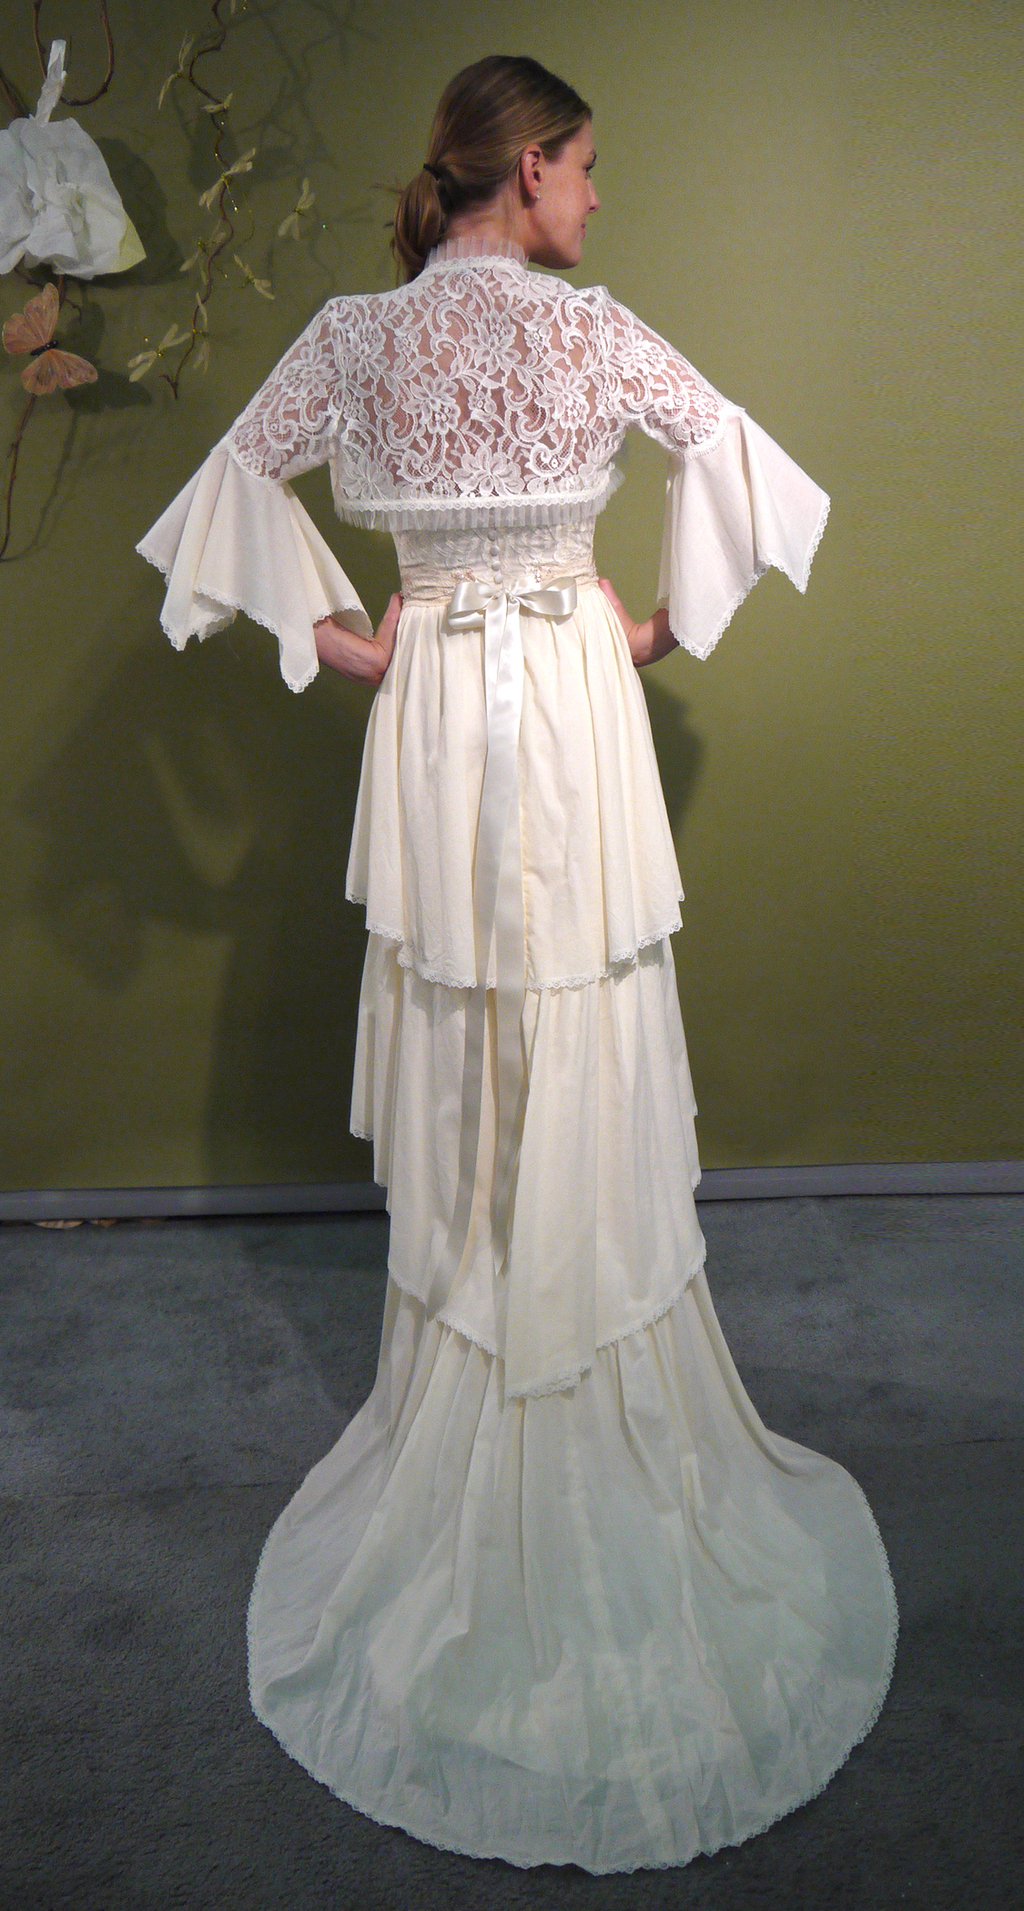 Fall-2011-wedding-dresses-louisa-sweetheart-ivory-bridal-gown-claire-pettibone-lace-sleeves-back-large.full